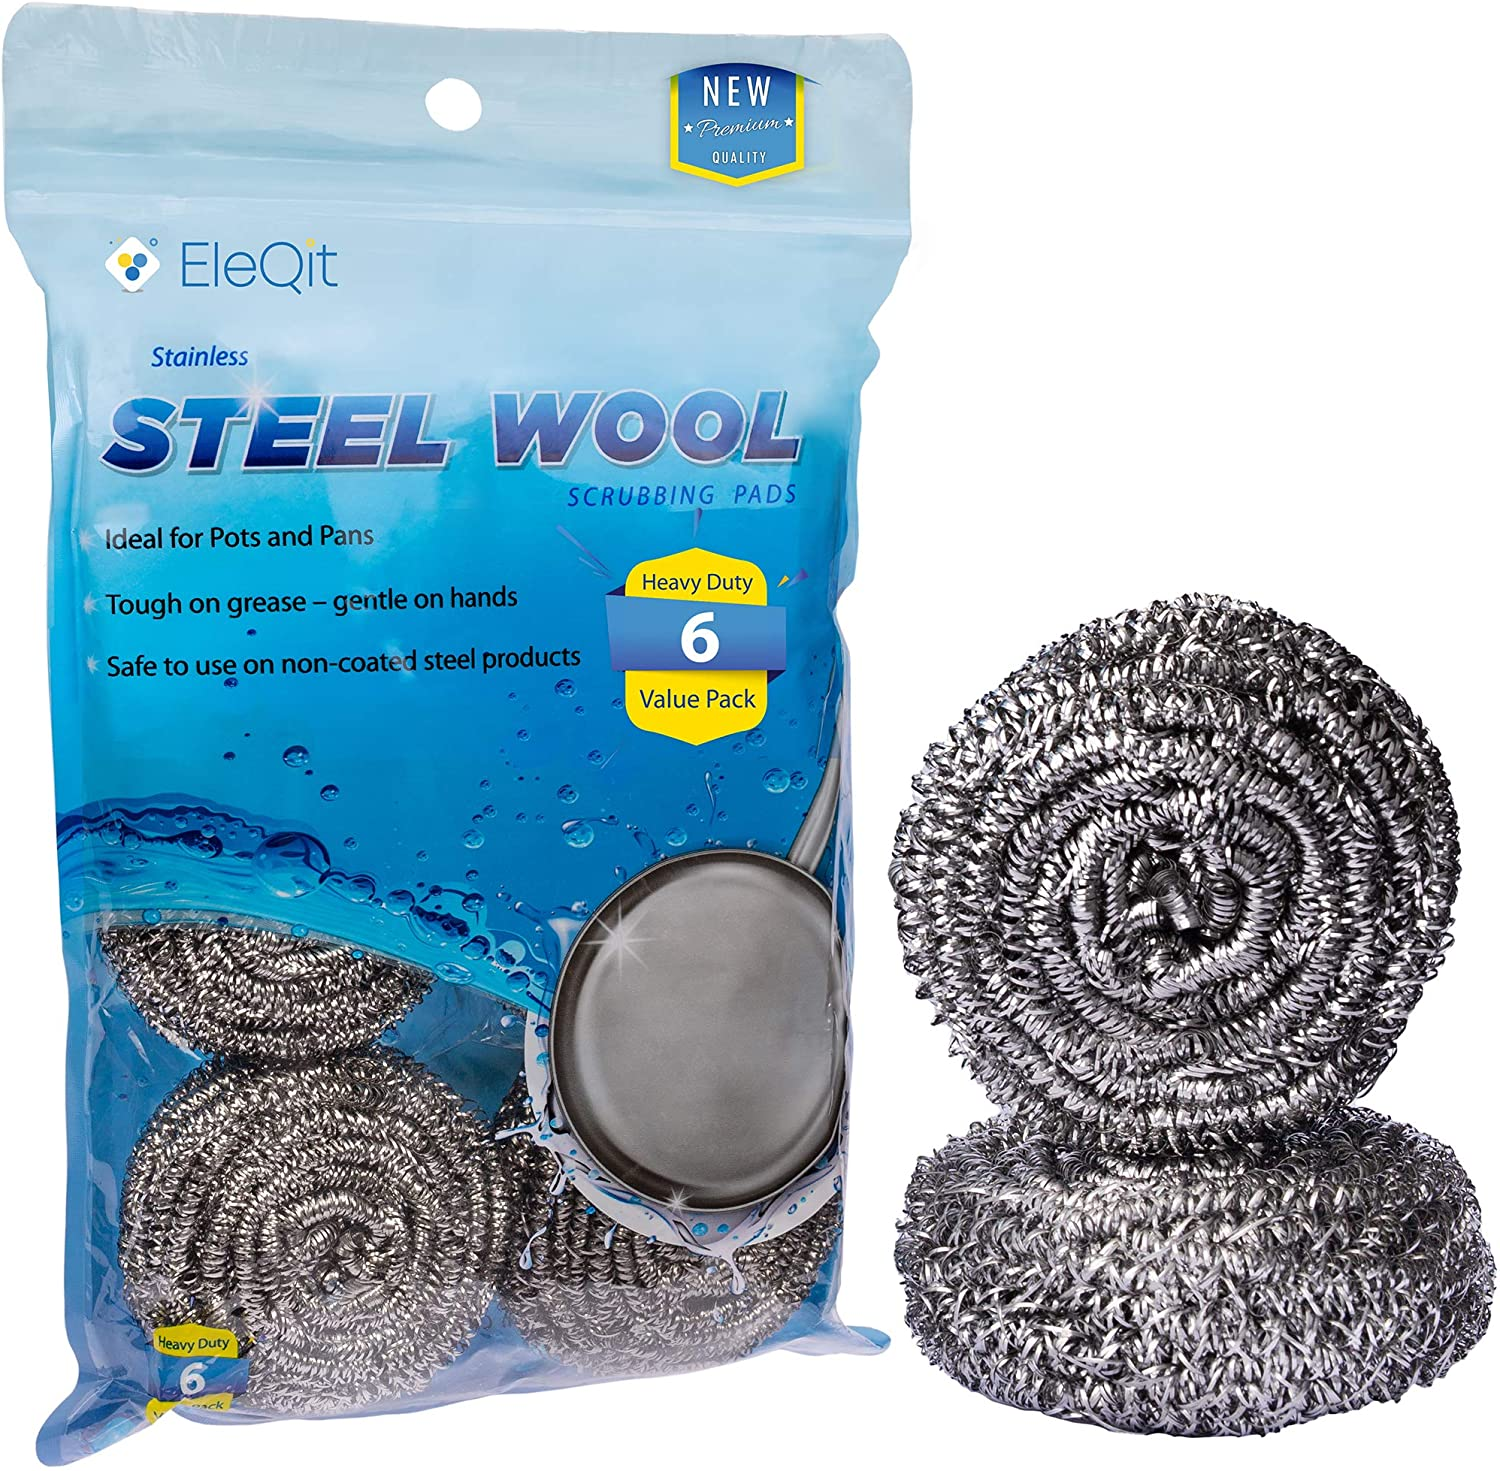 6 Pack Stainless Steel Wool Scrubber Sponge for Removing Tough Dirt, Grease, Oil or Stains from Dishes, Pots, Stovetops, Drip Pan, Cookware, Kitchenware : Health & Household